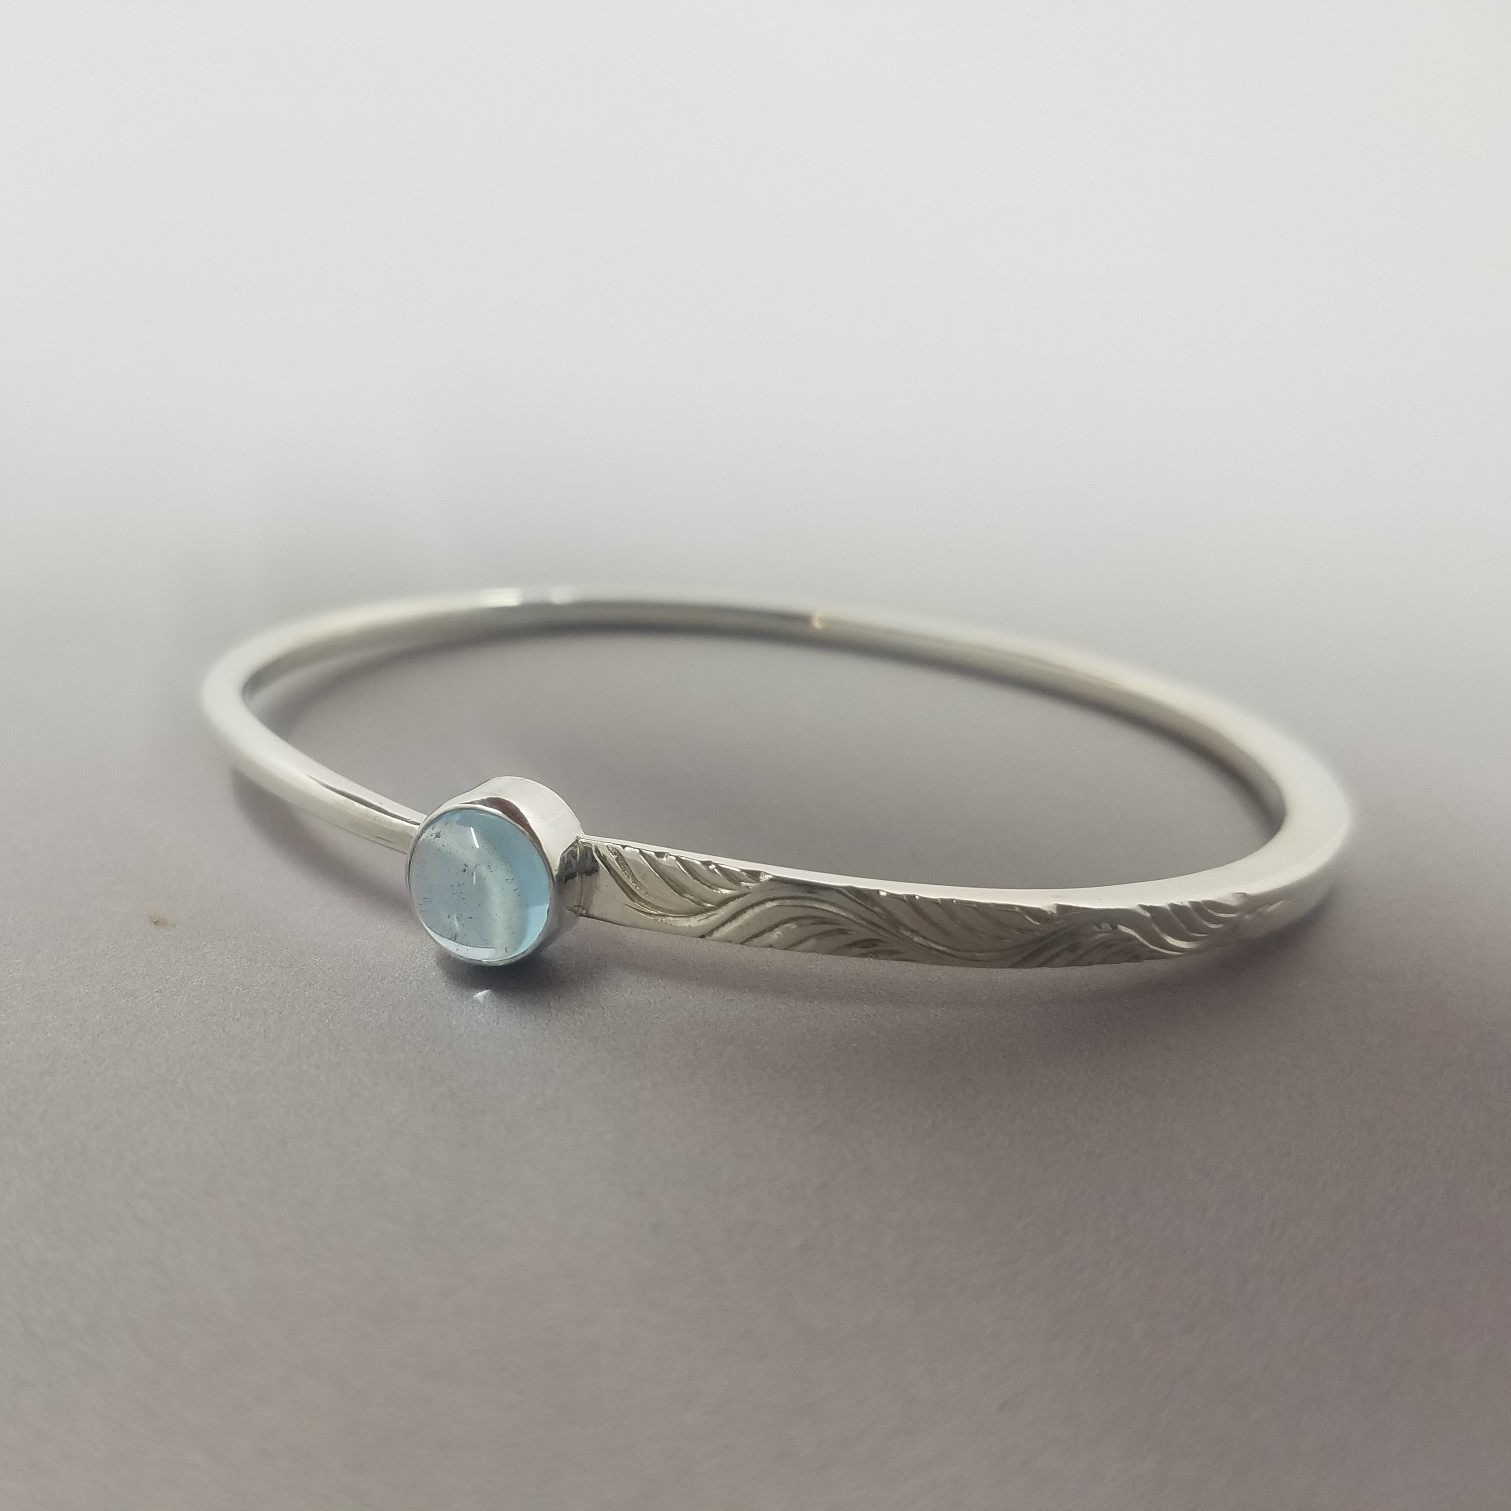 Forged and Engraved Topaz Bangle